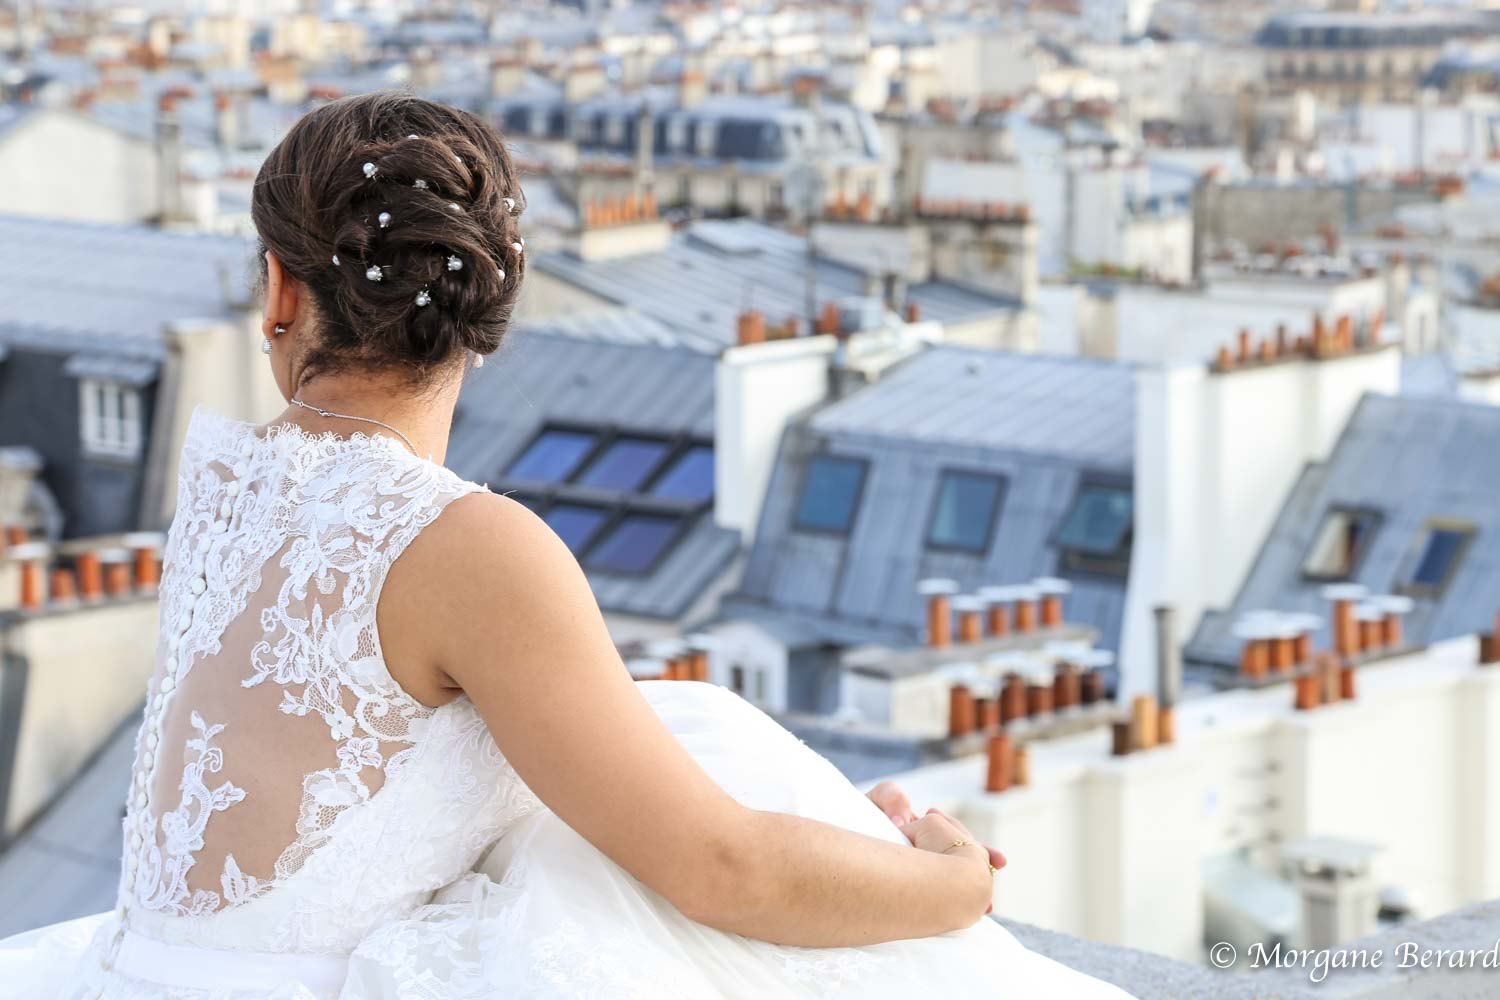 paris-photo-couple-mariés-séance-wedding-mariage-photographe-67